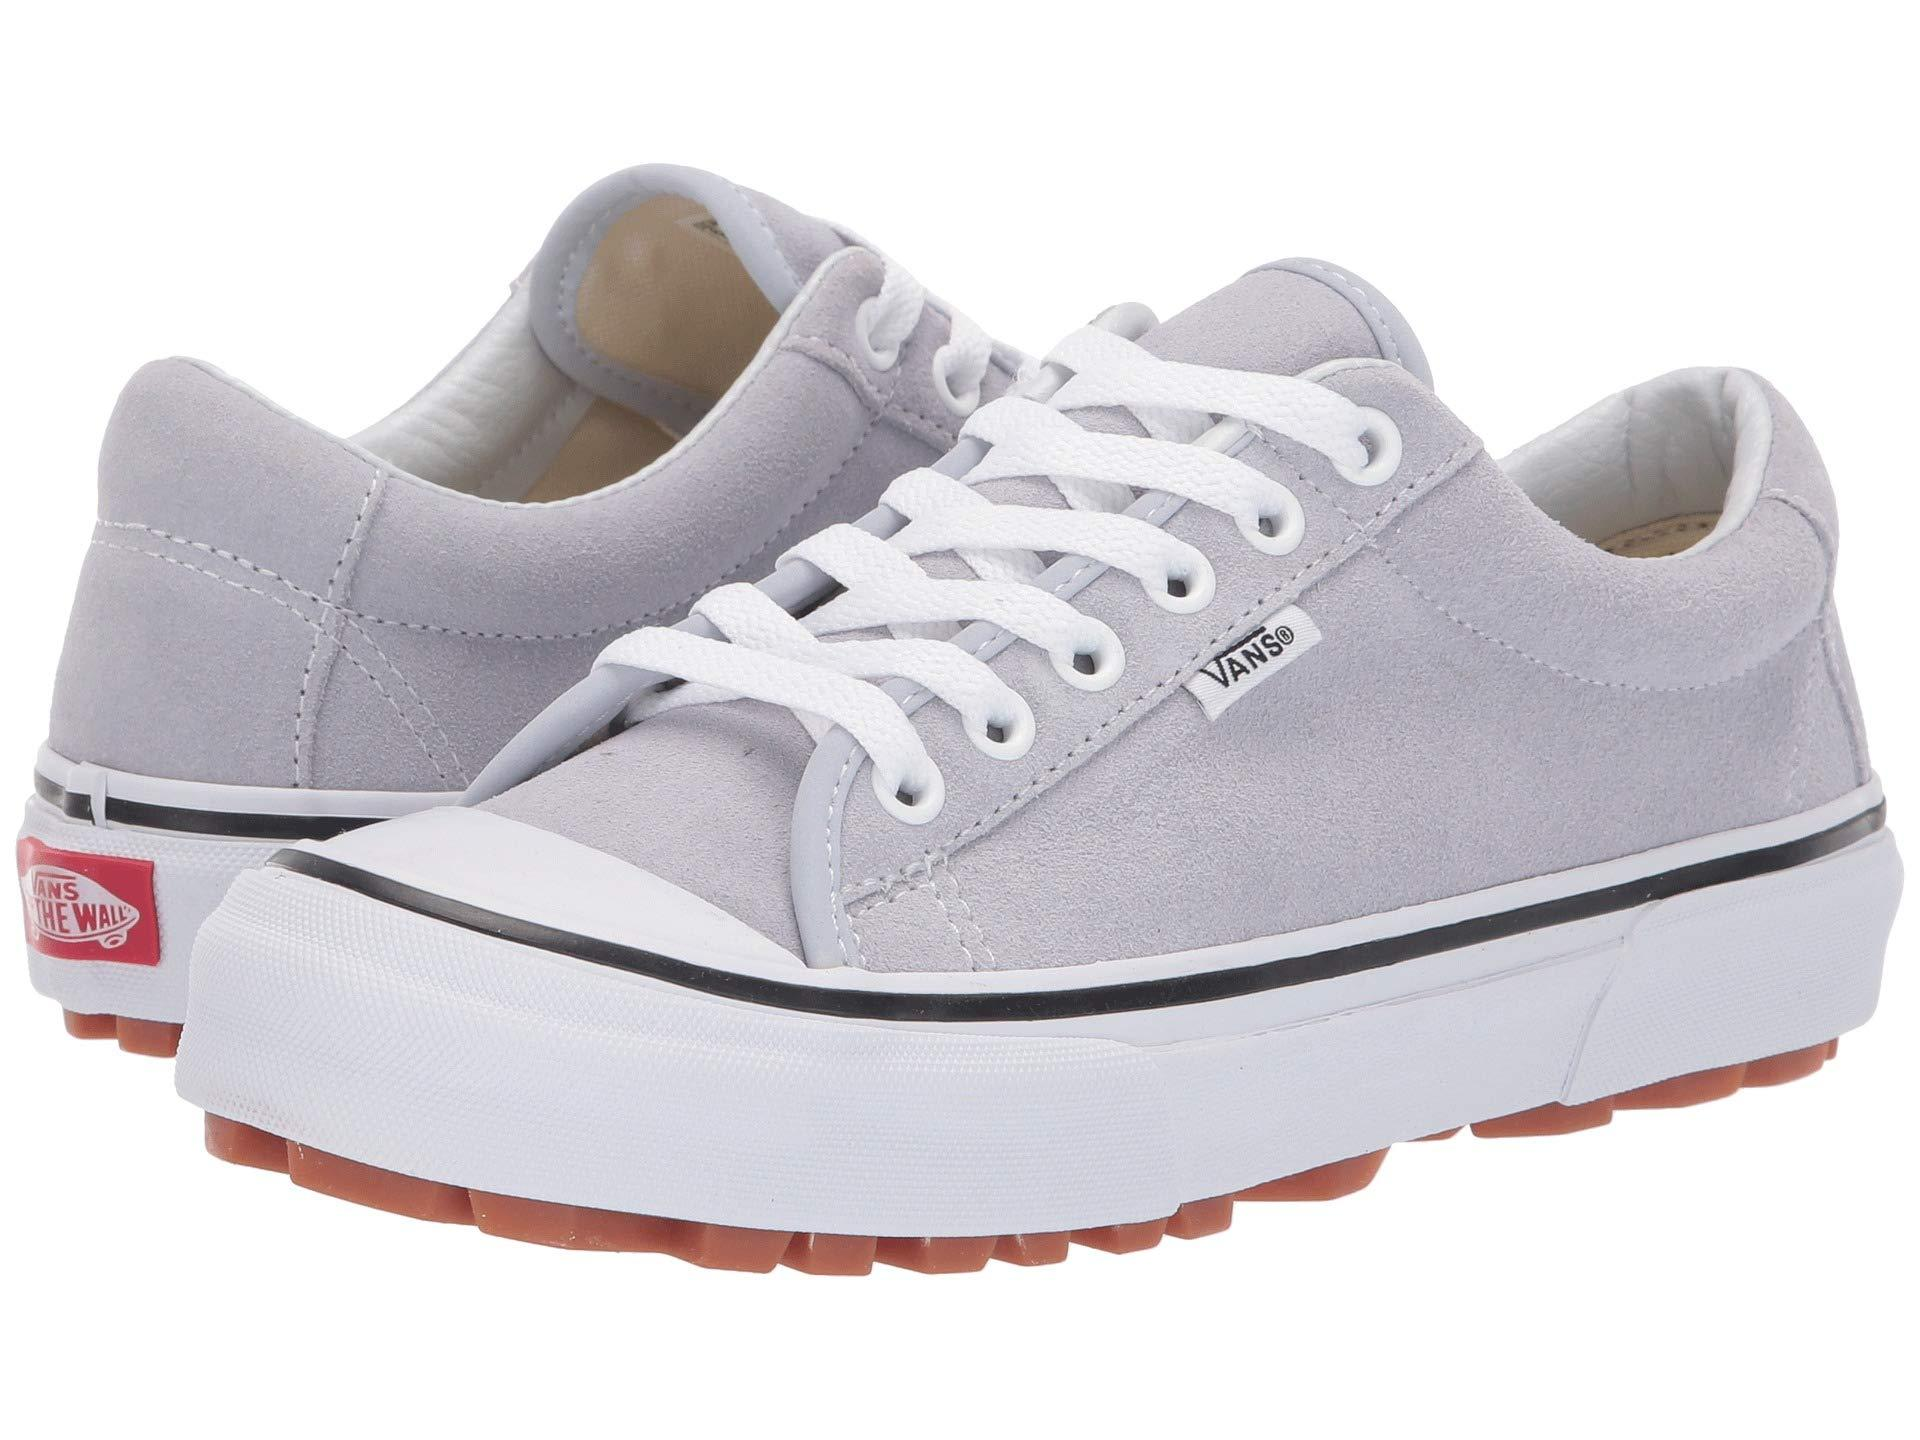 Vans Suede Style 29 in Gray (White) for Men - Lyst